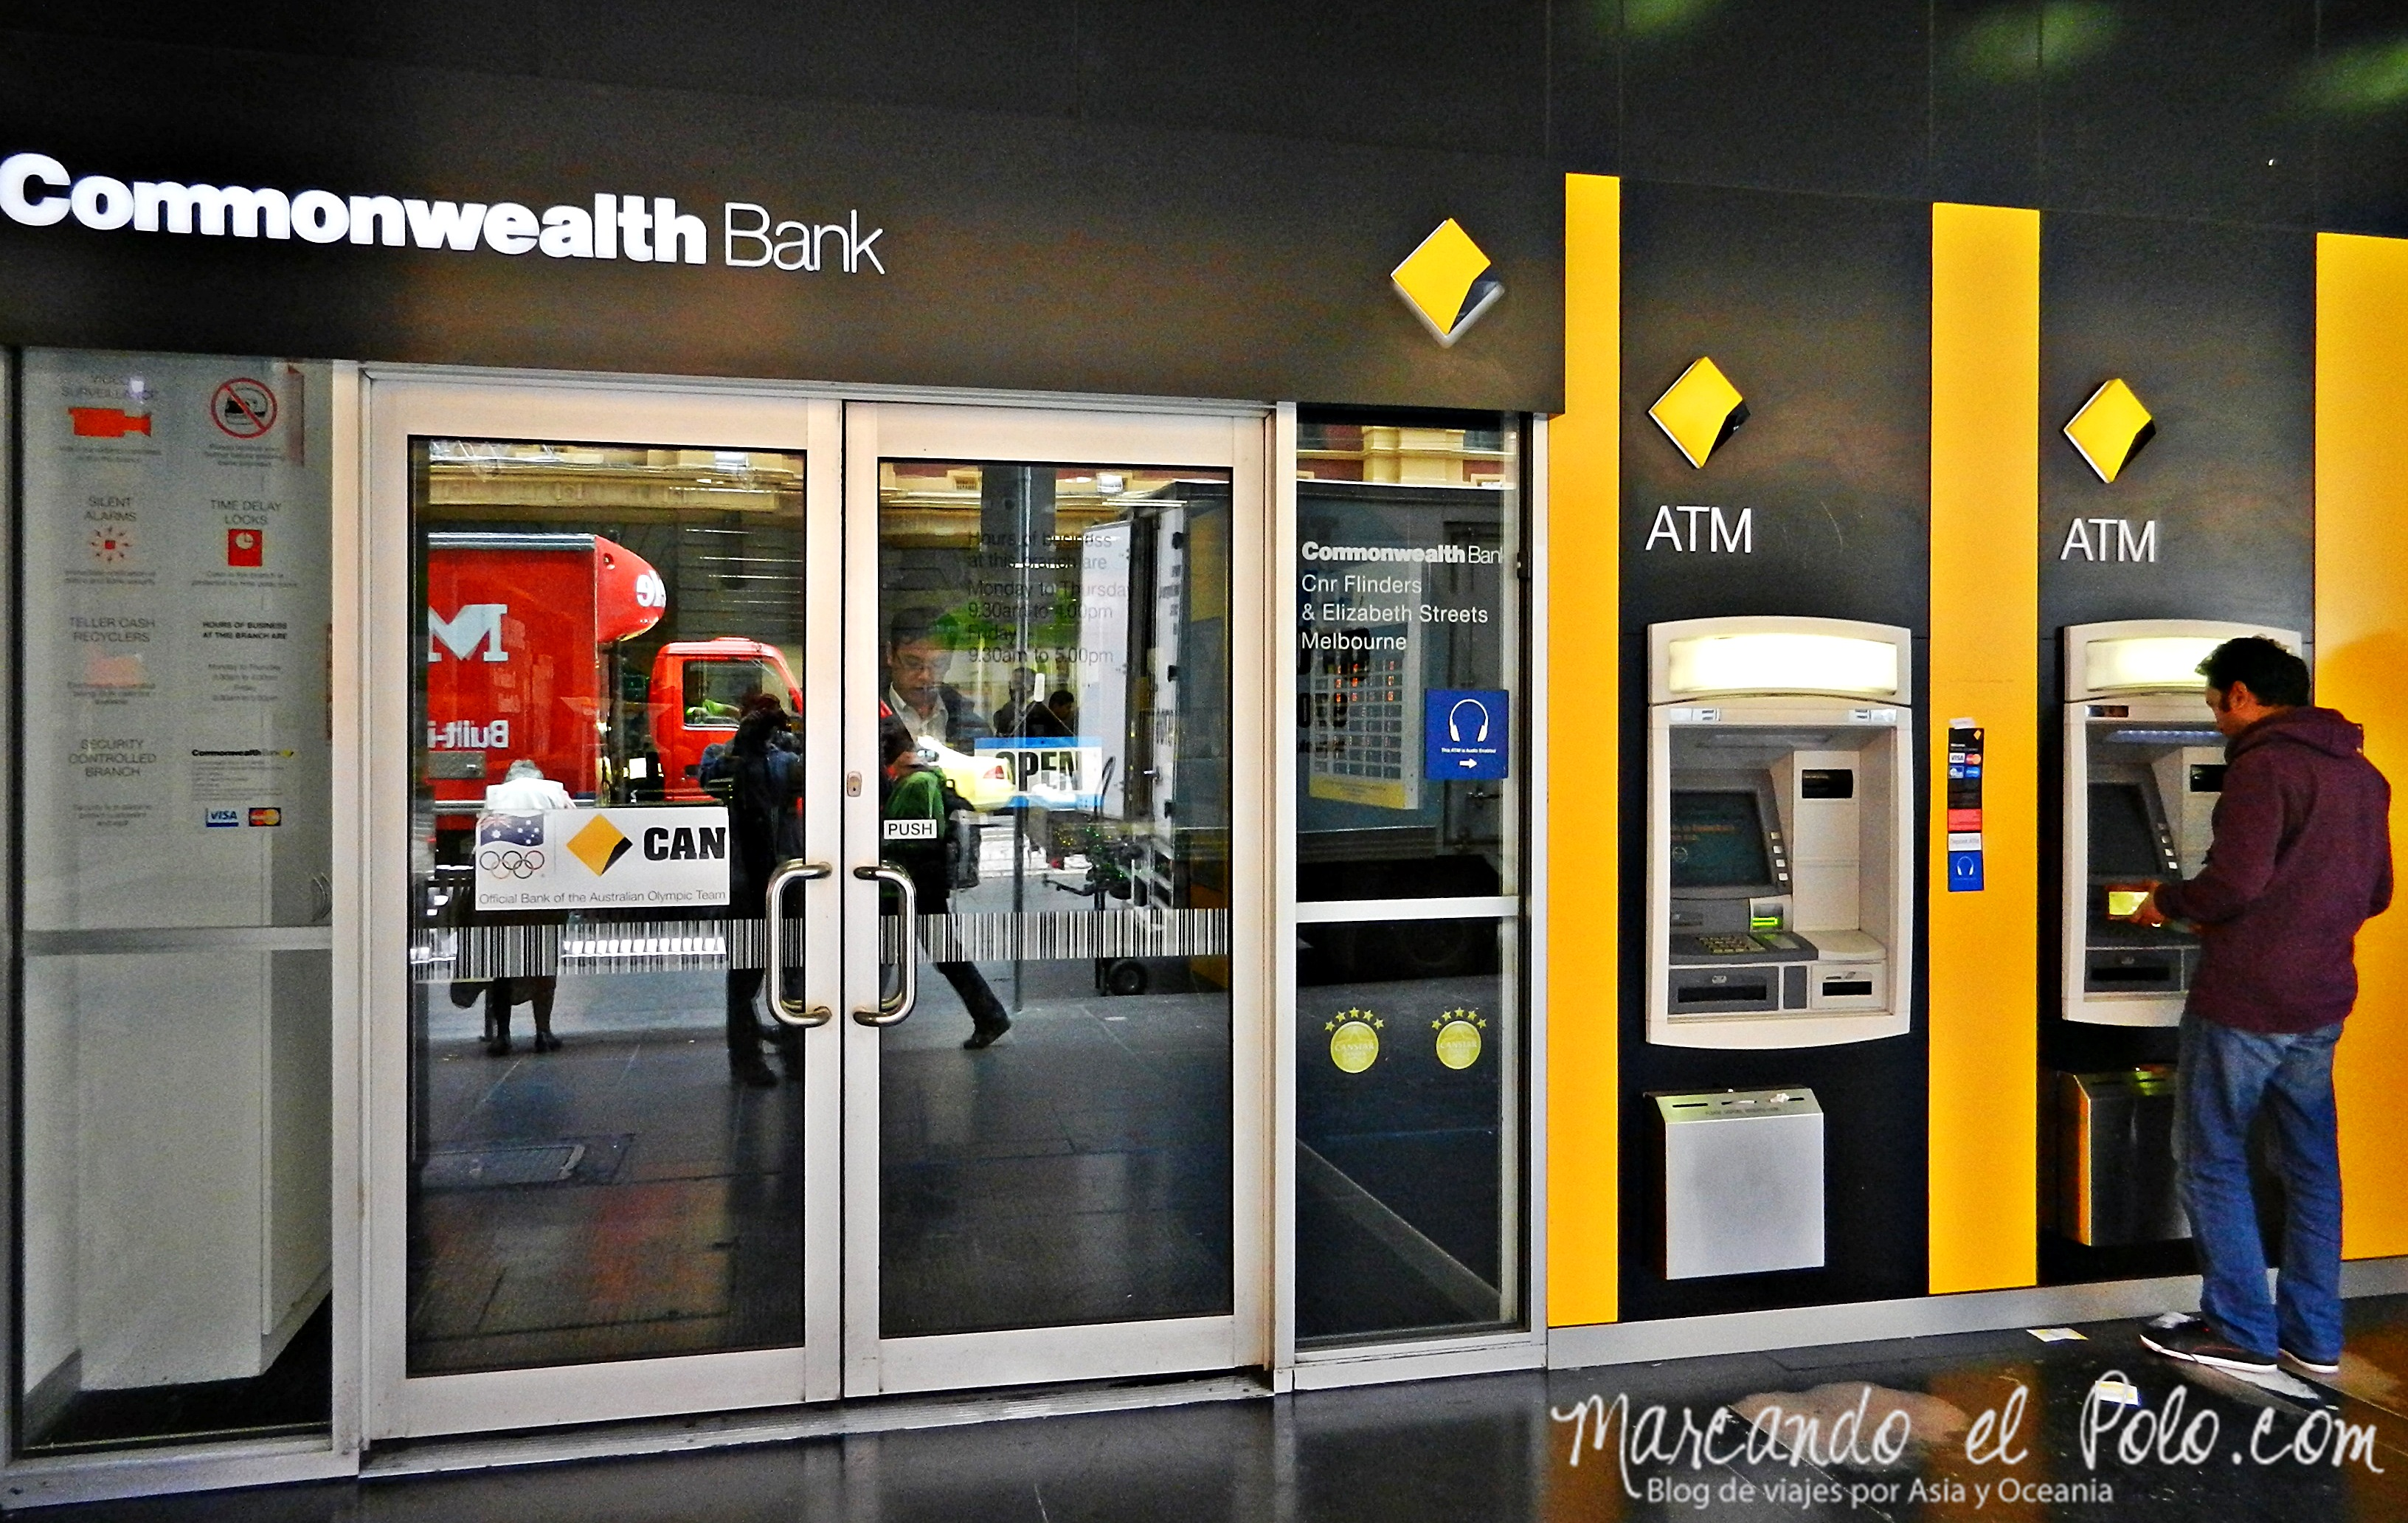 Working Holiday Australia: Commonwealth Bank